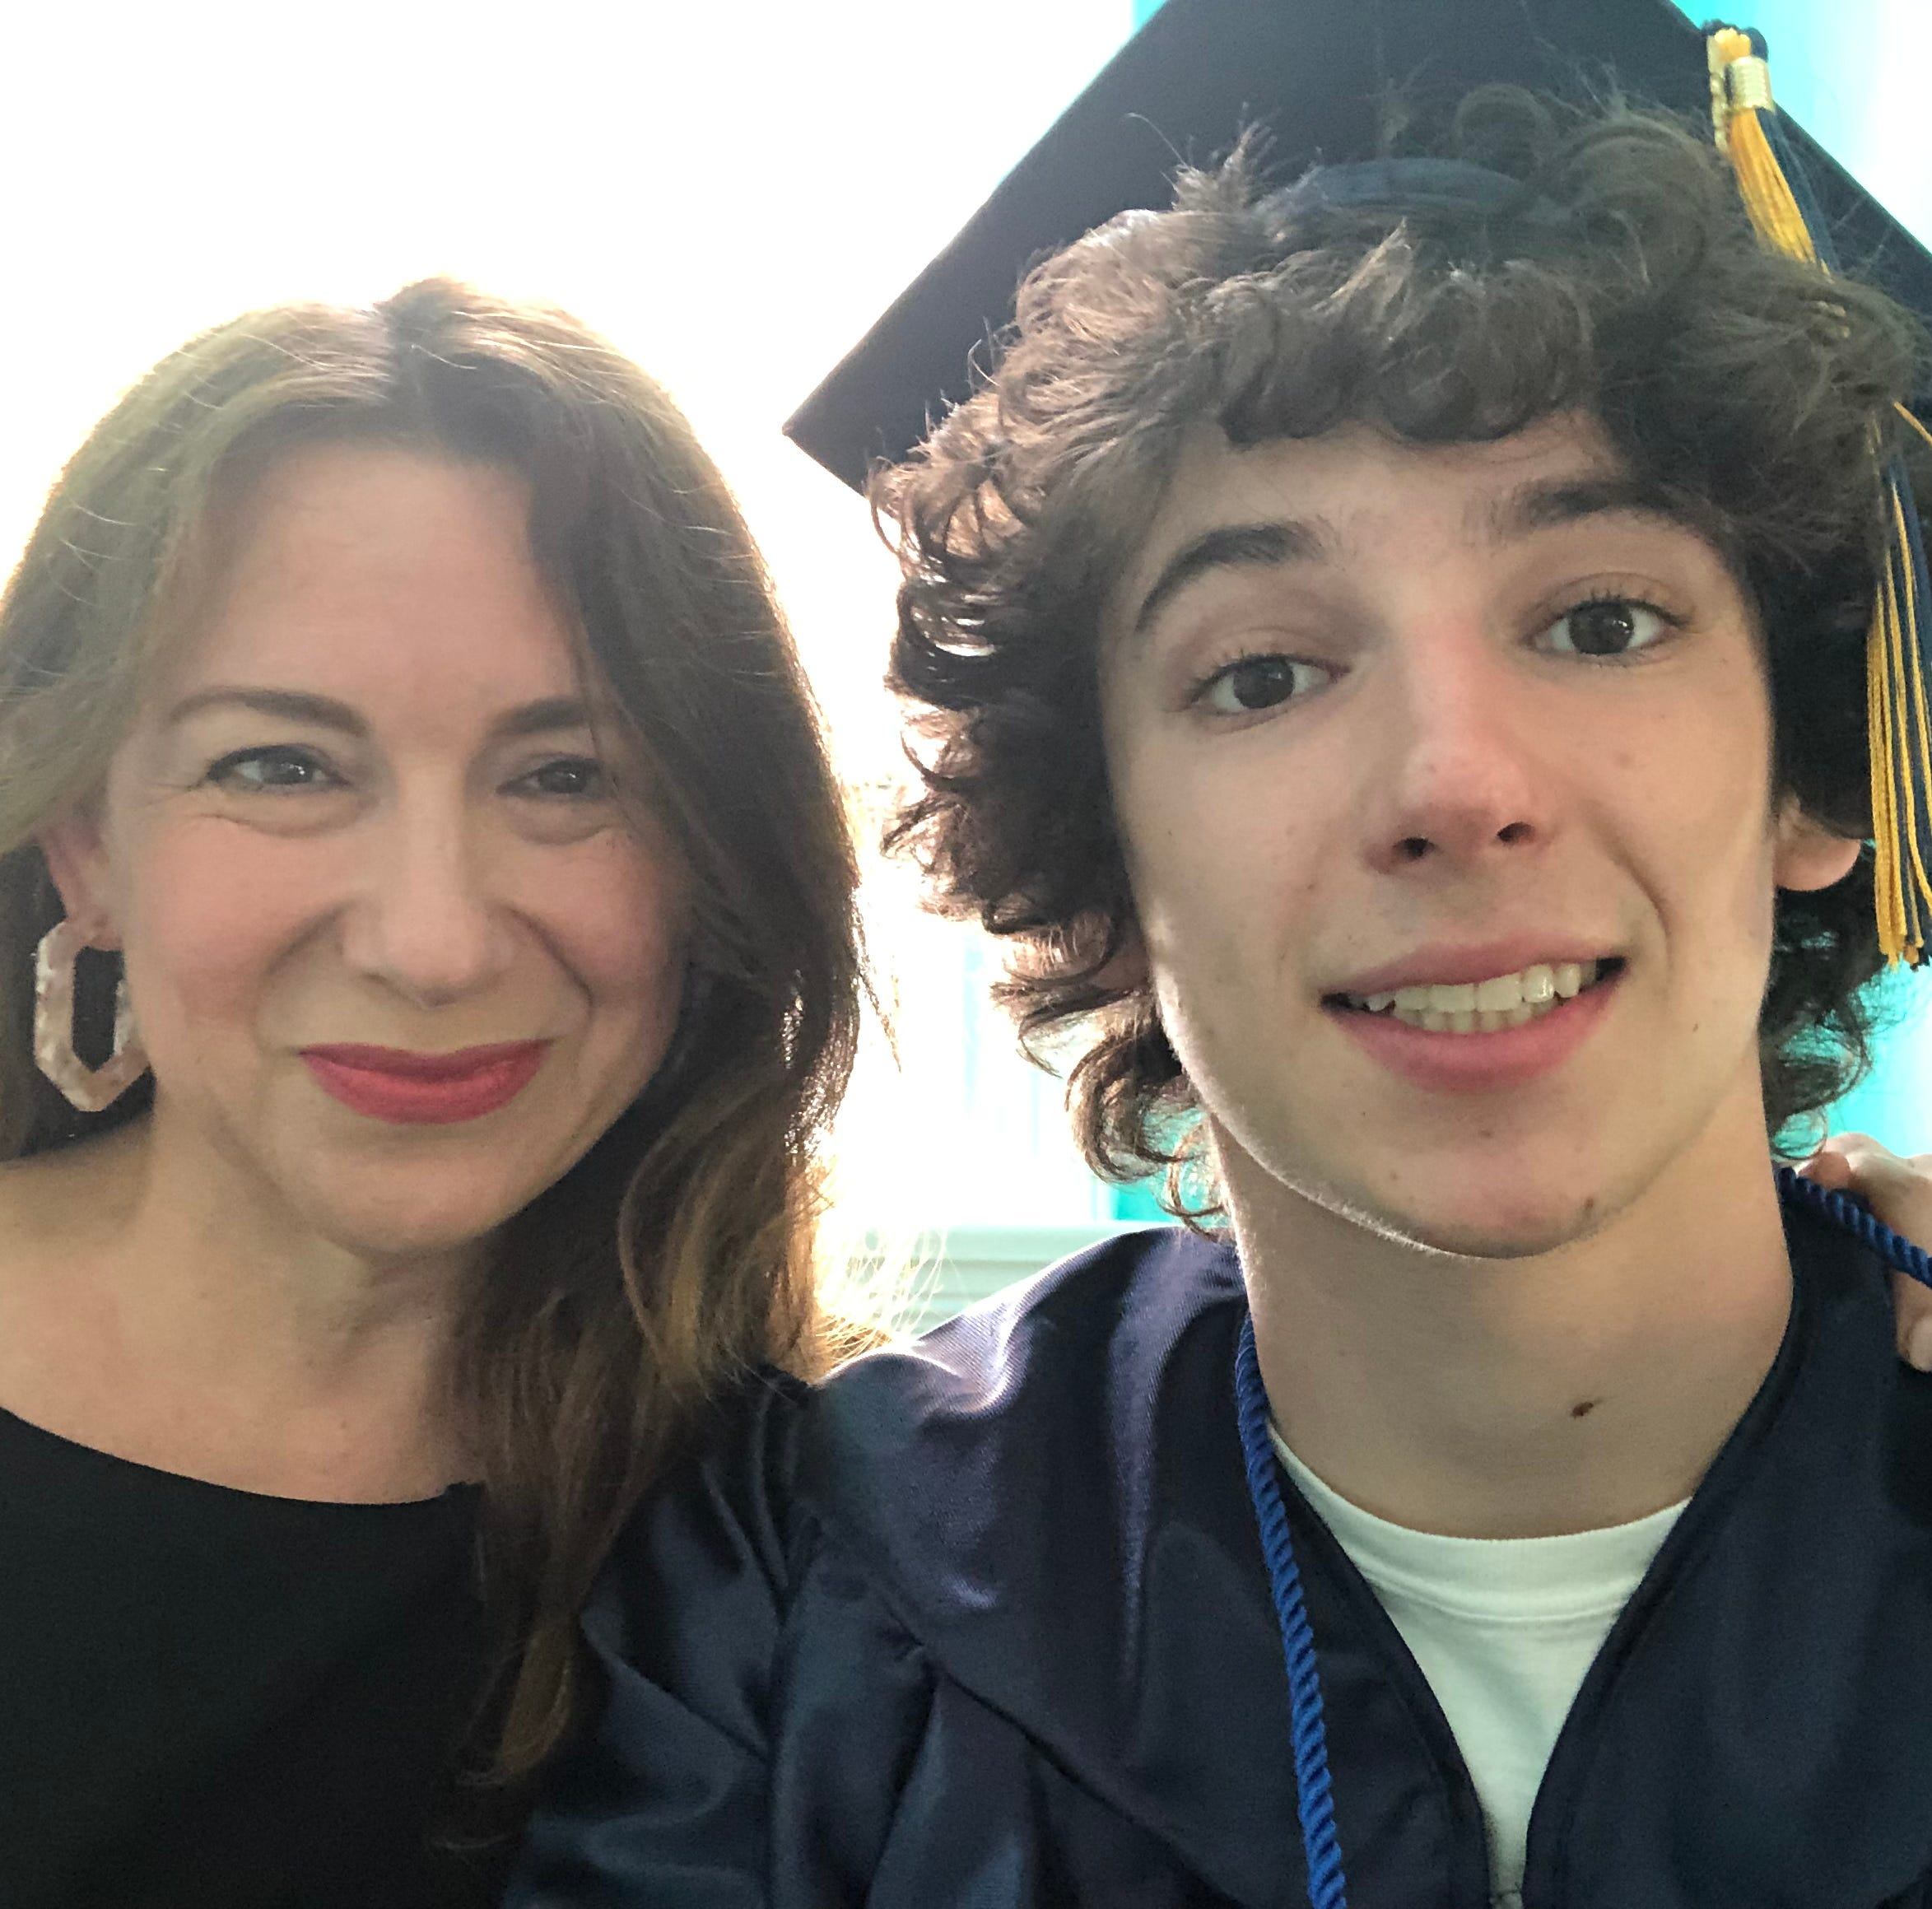 Laura Trujillo and her son Theo on graduation day.